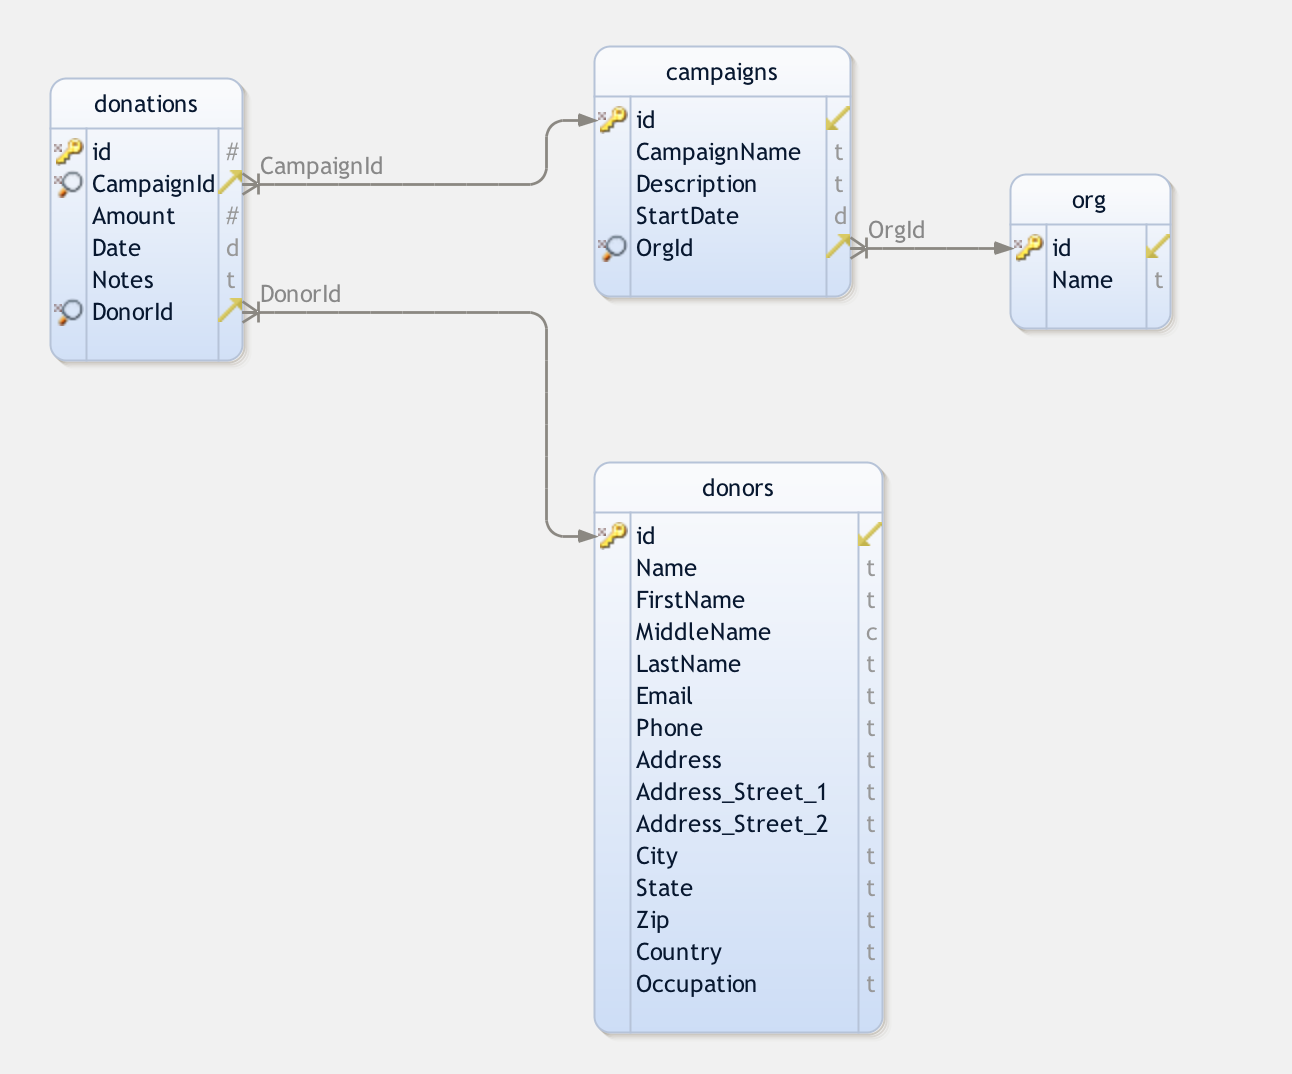 how to create a mysql database from scratch